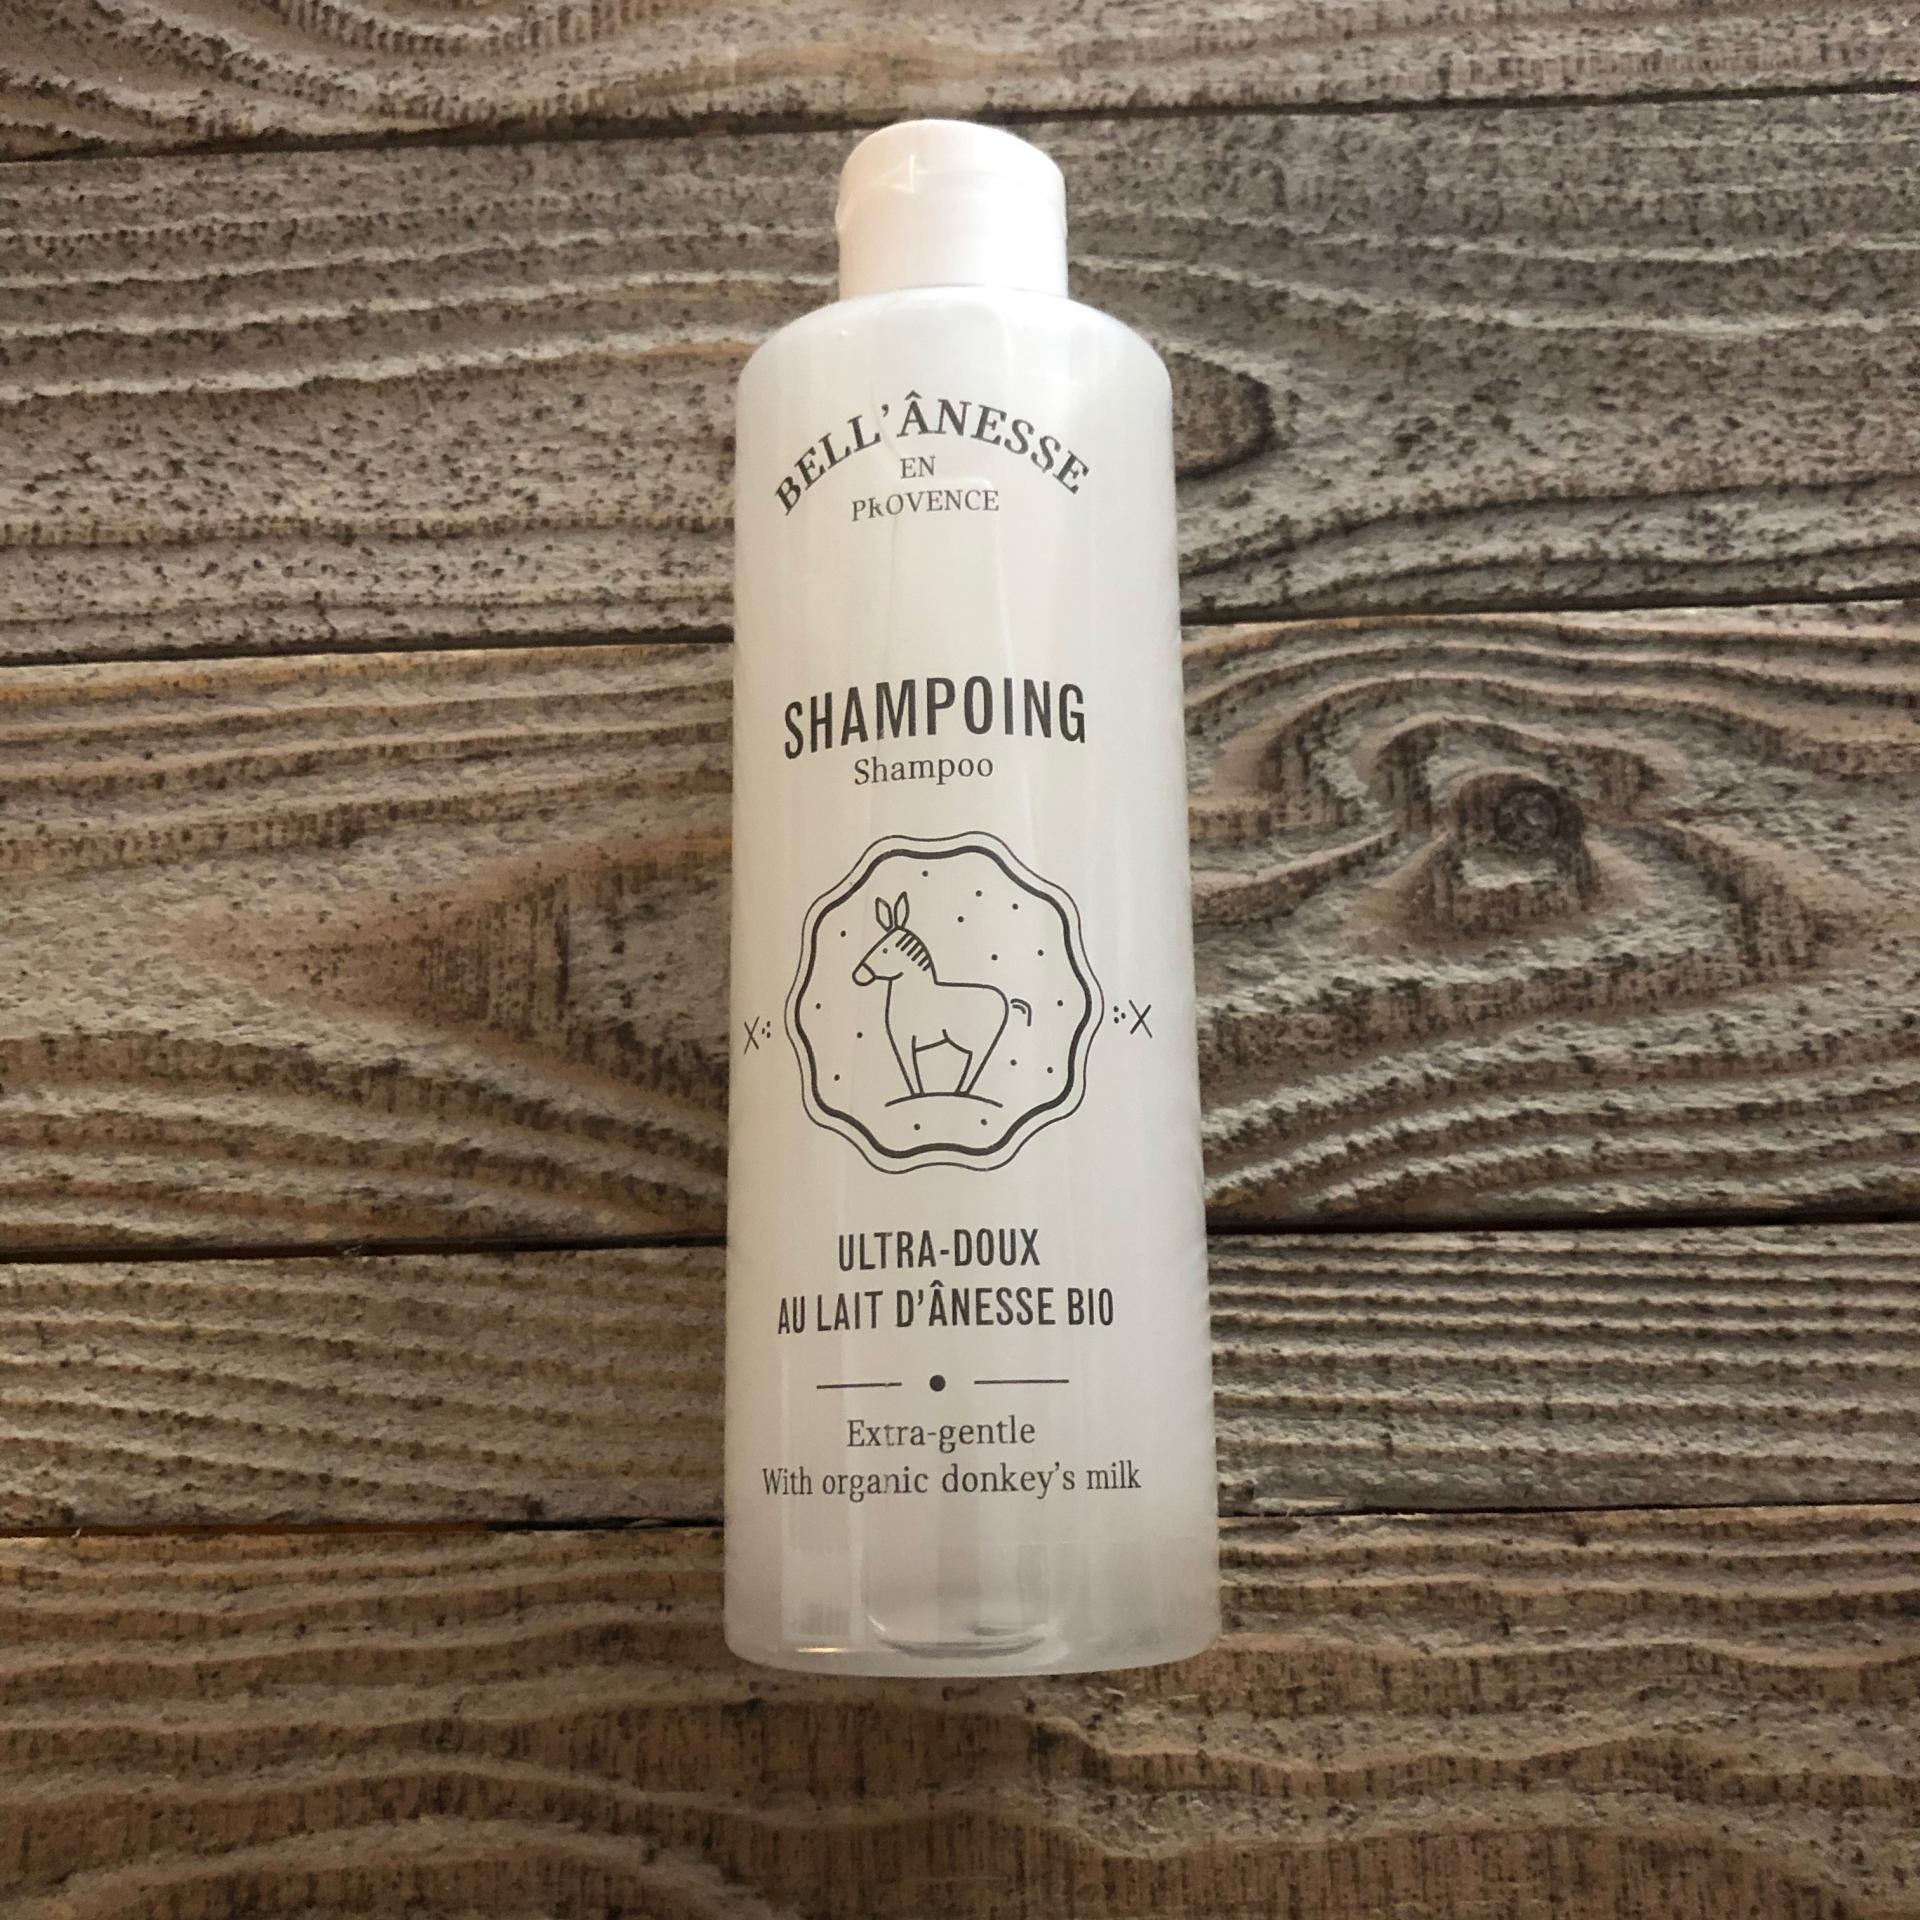 Shampooing lait d anesse